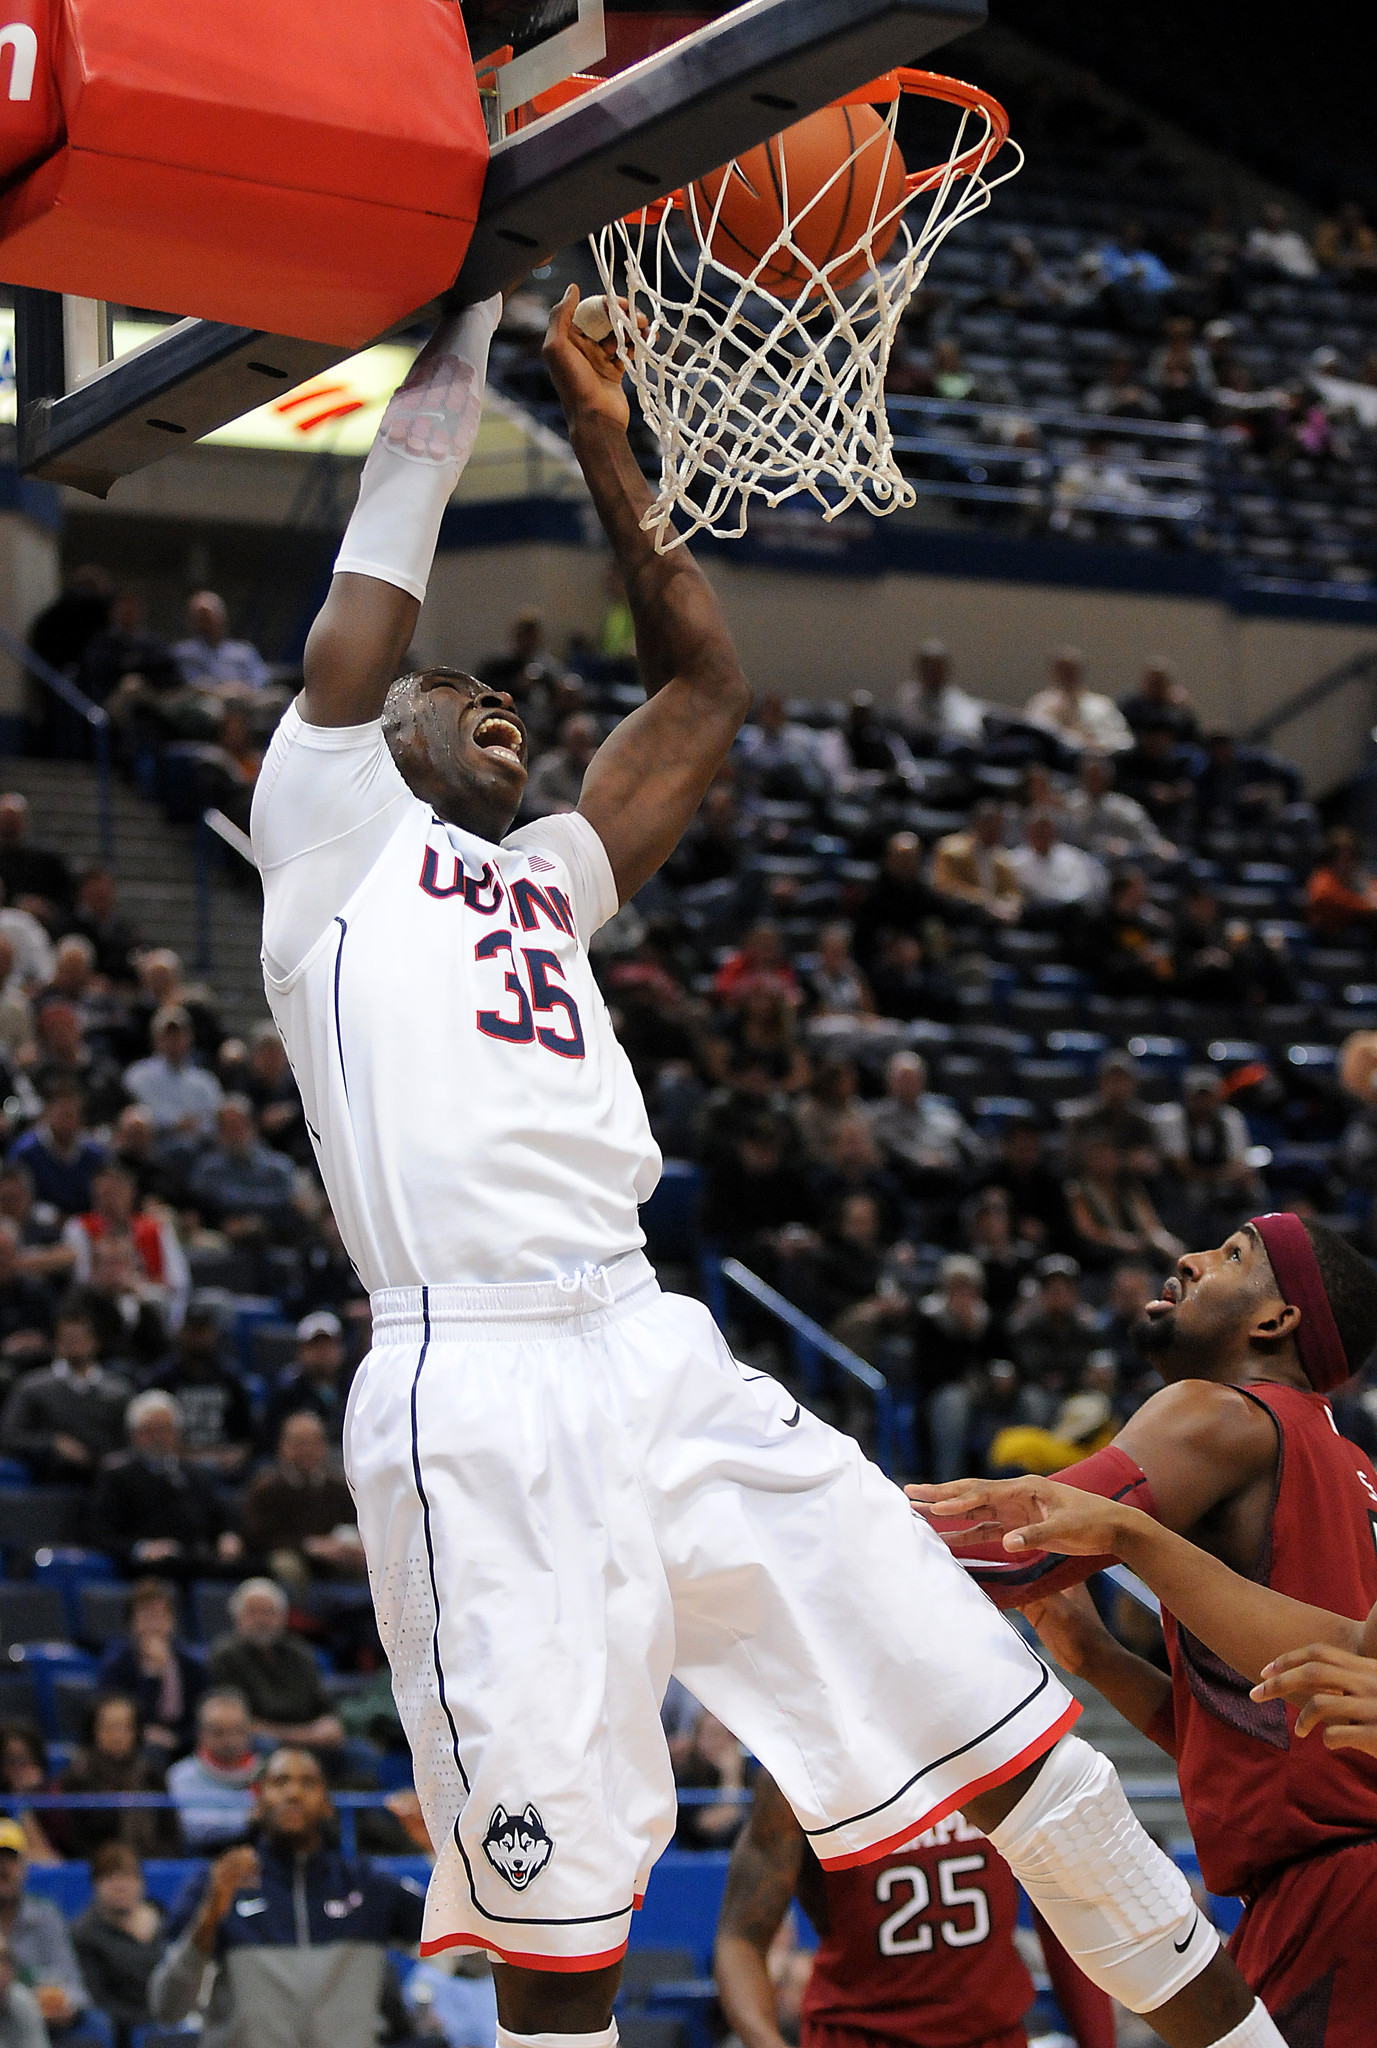 UConn Men vs. Temple - Hartford Courant